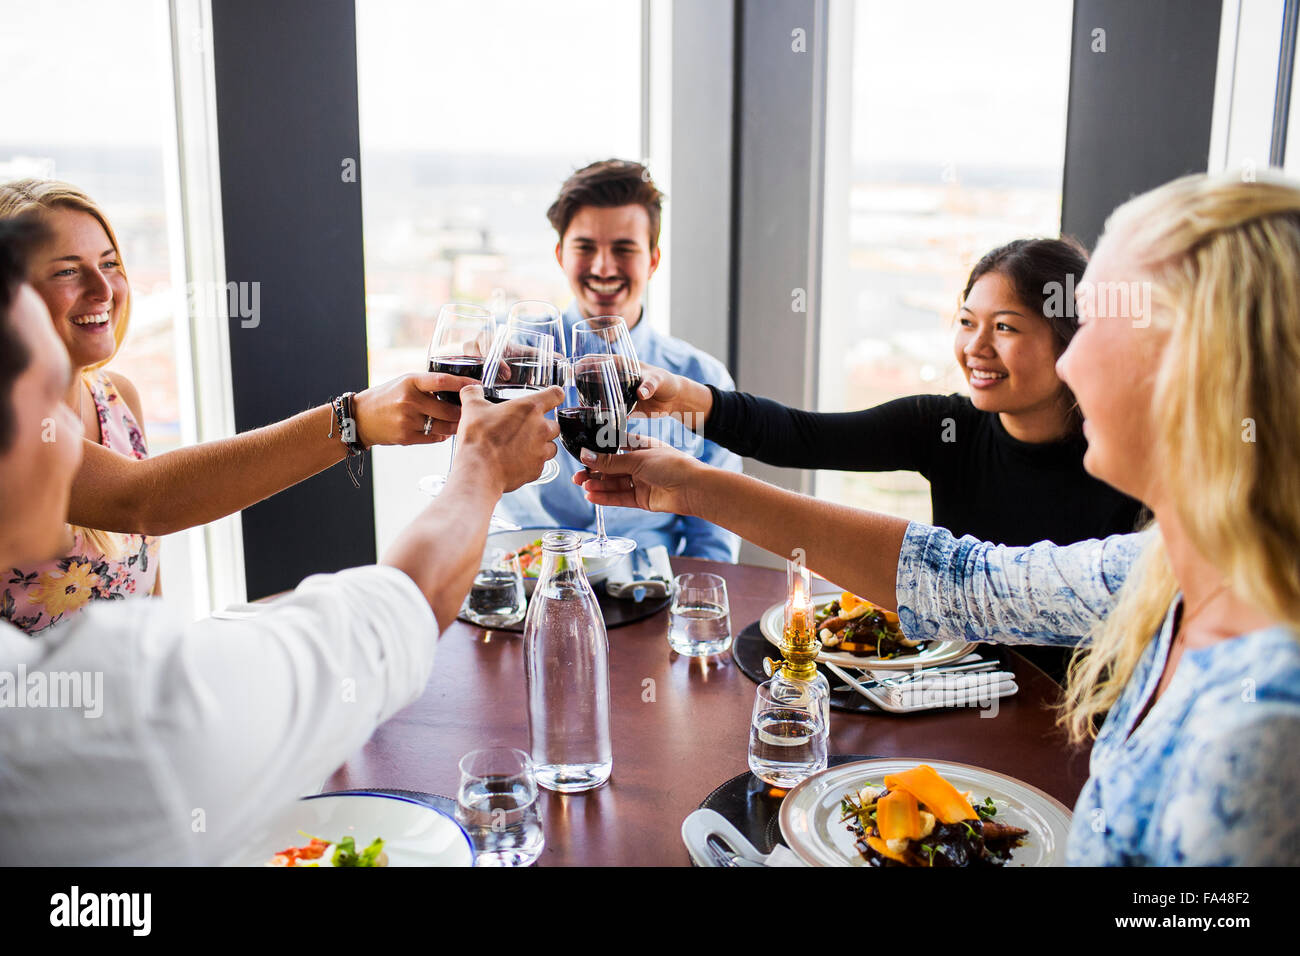 Friends toasting with red wine and enjoying at Sky bar restaurant - Stock Image